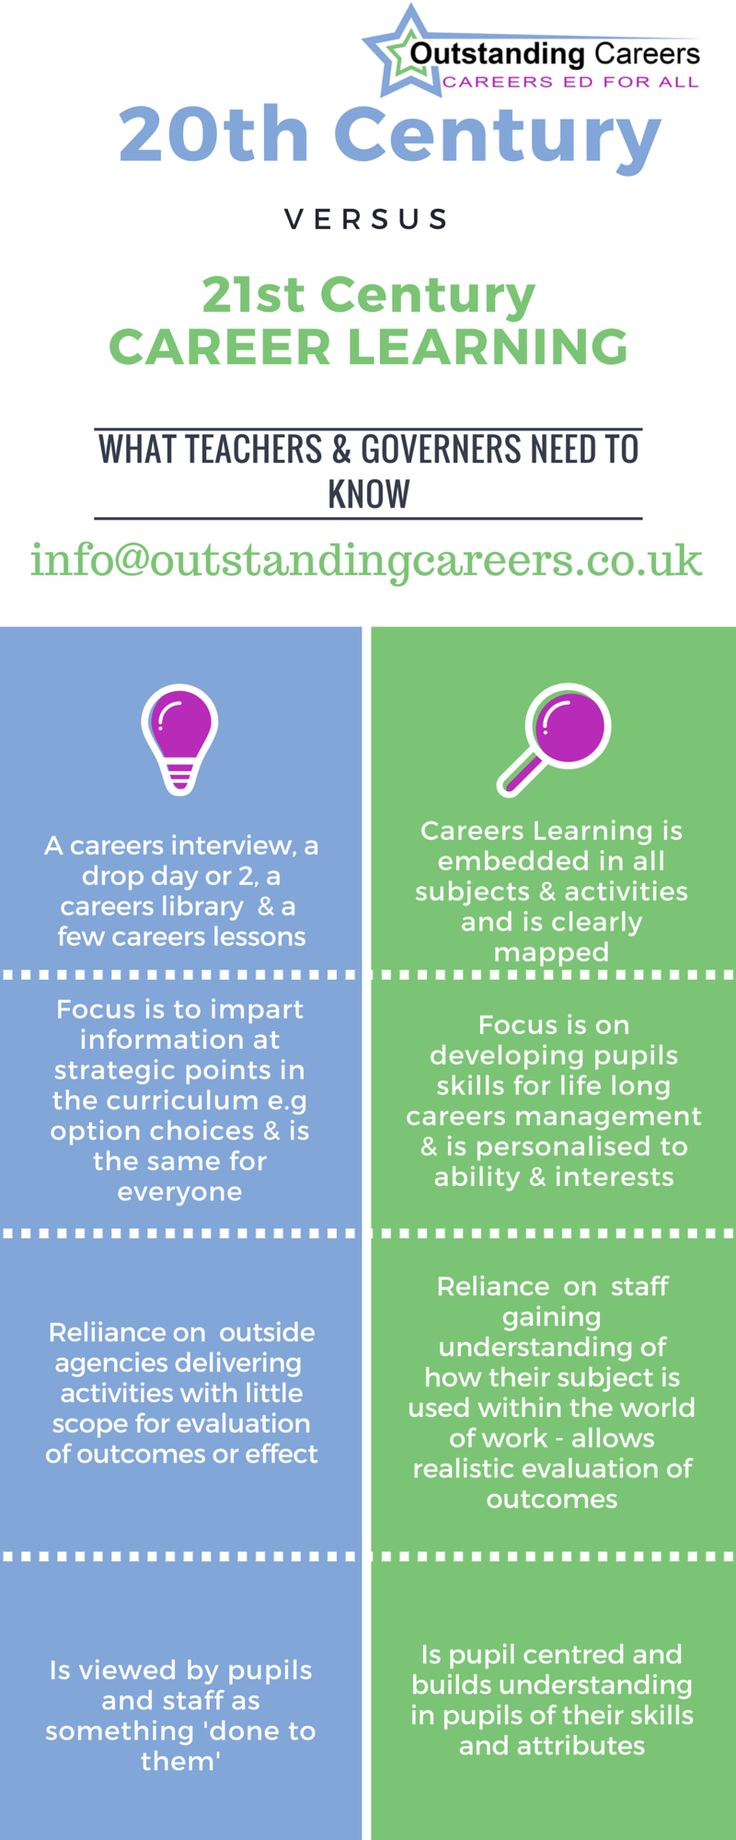 what does st century careers learning look like in schools these what does 21st century careers learning look like in schools these days guidance teacher jobs career and 21st century